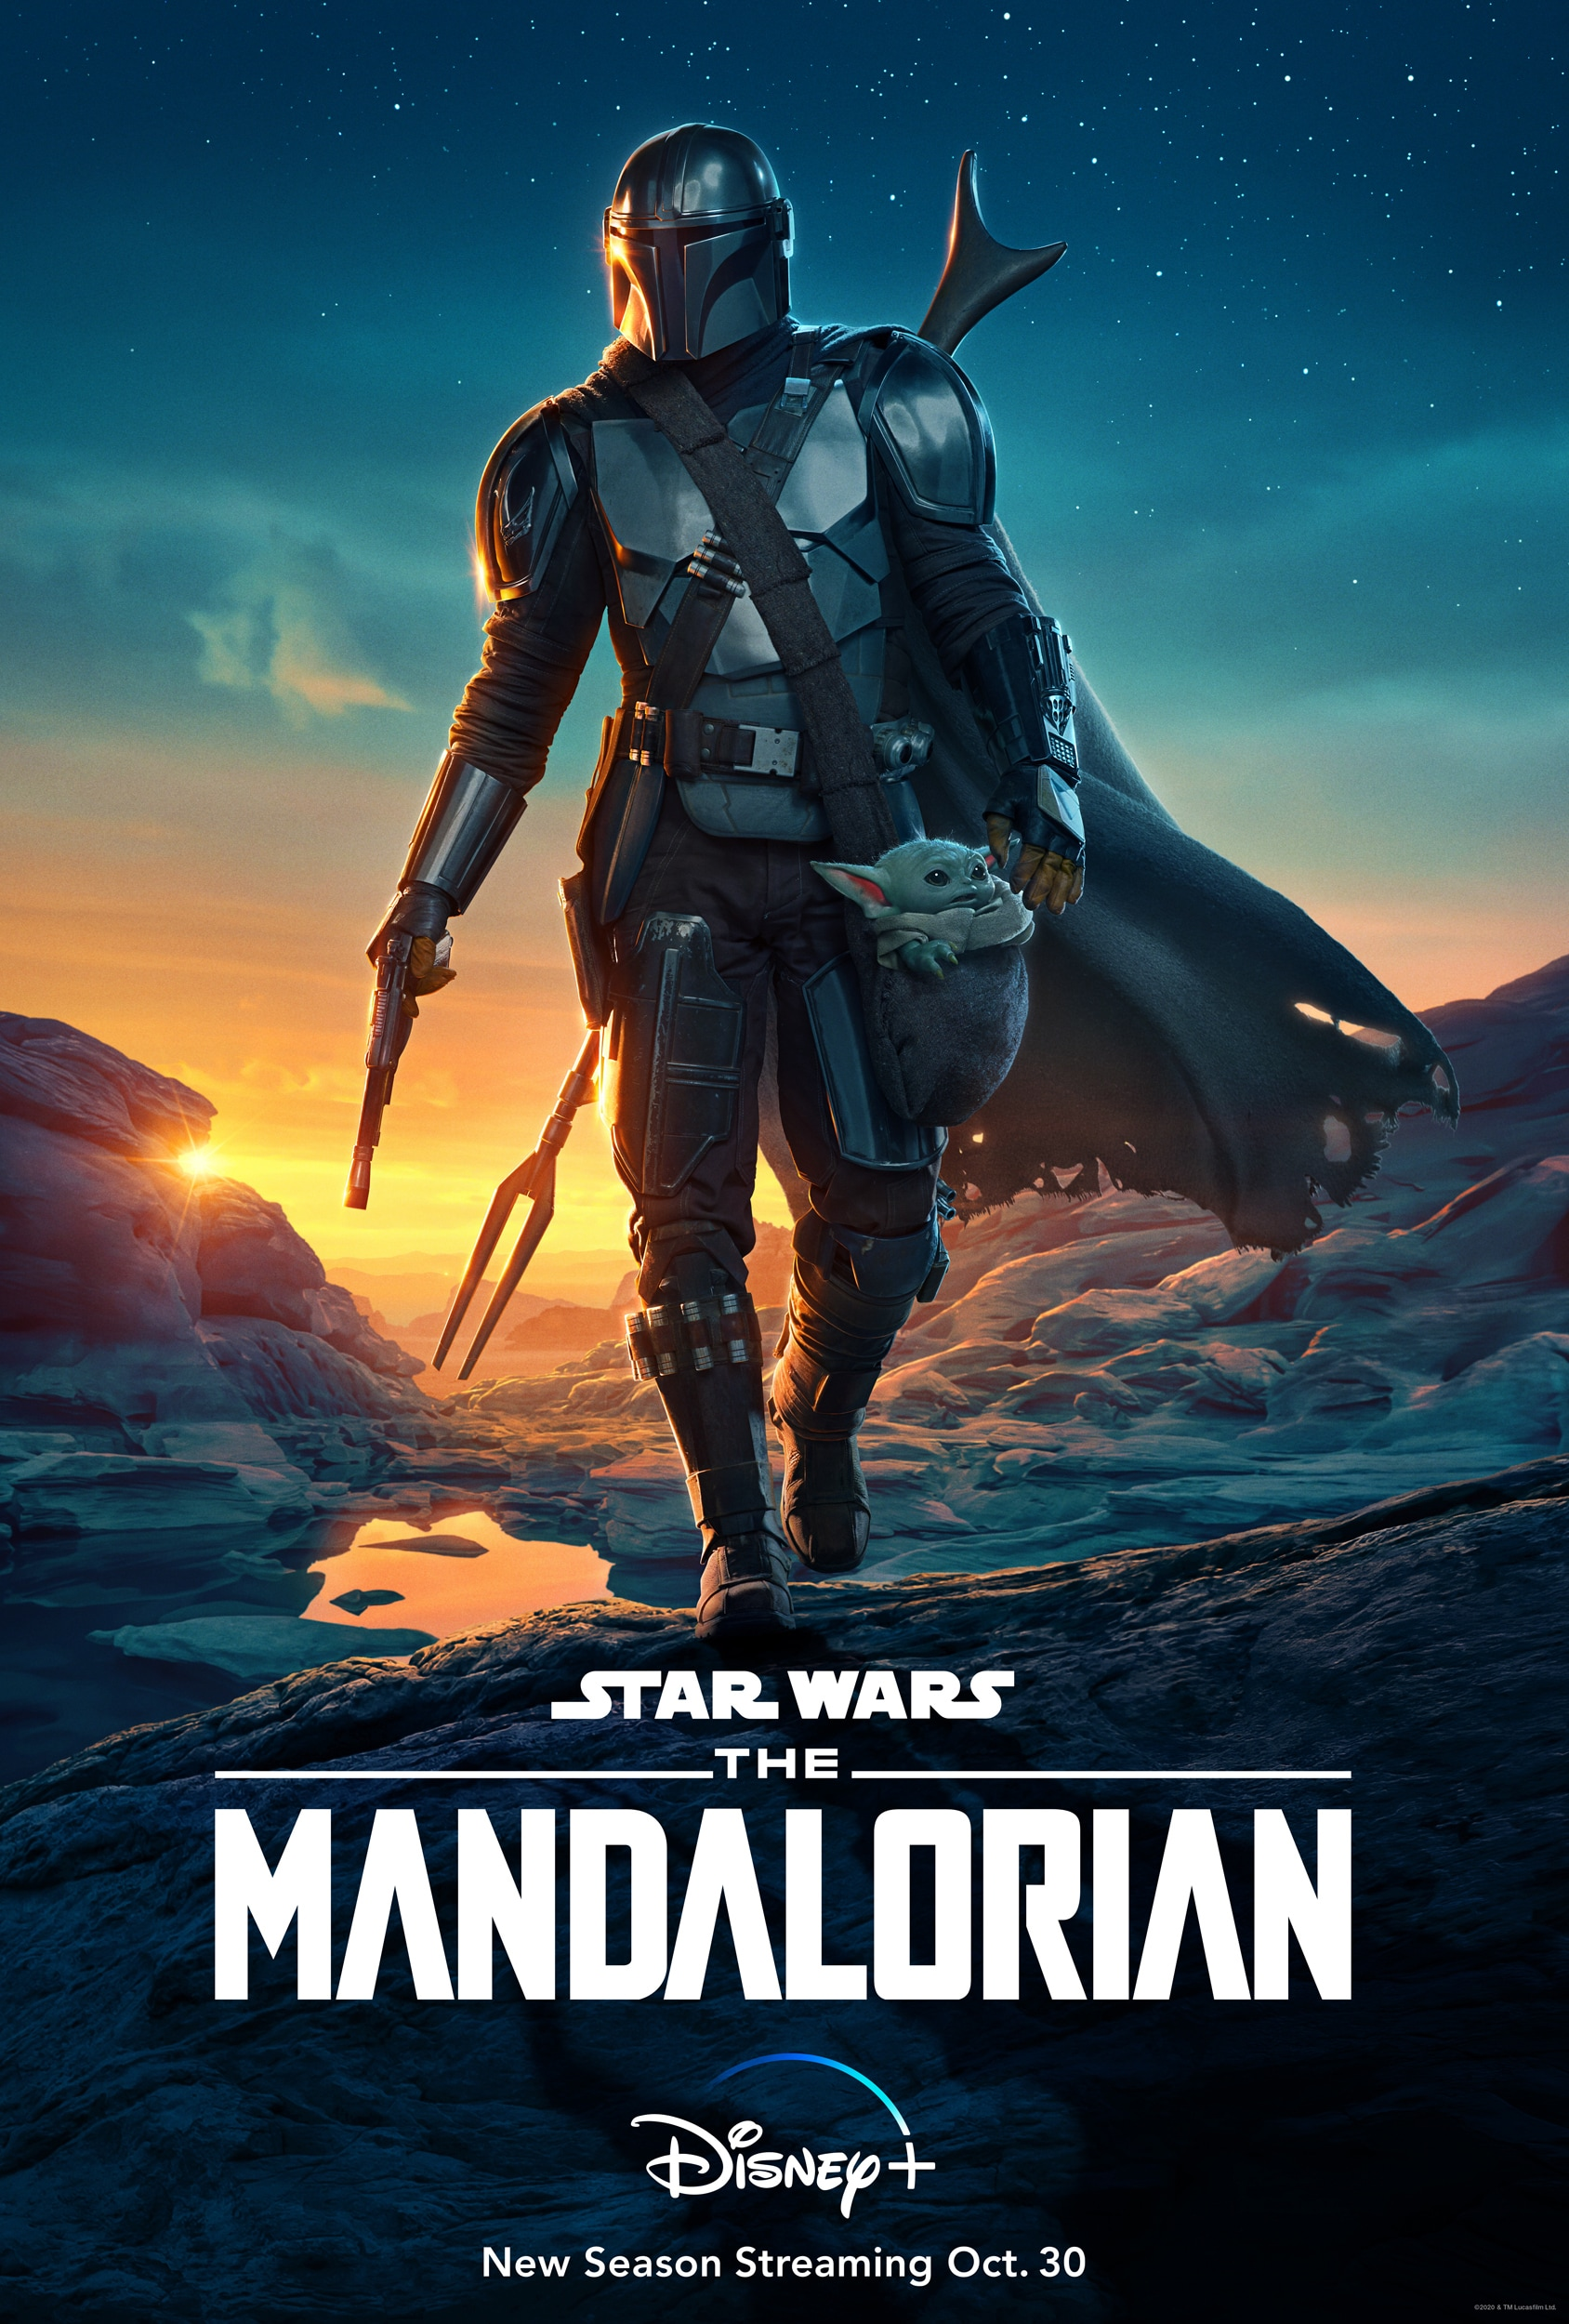 The Mandalorian on Disney+